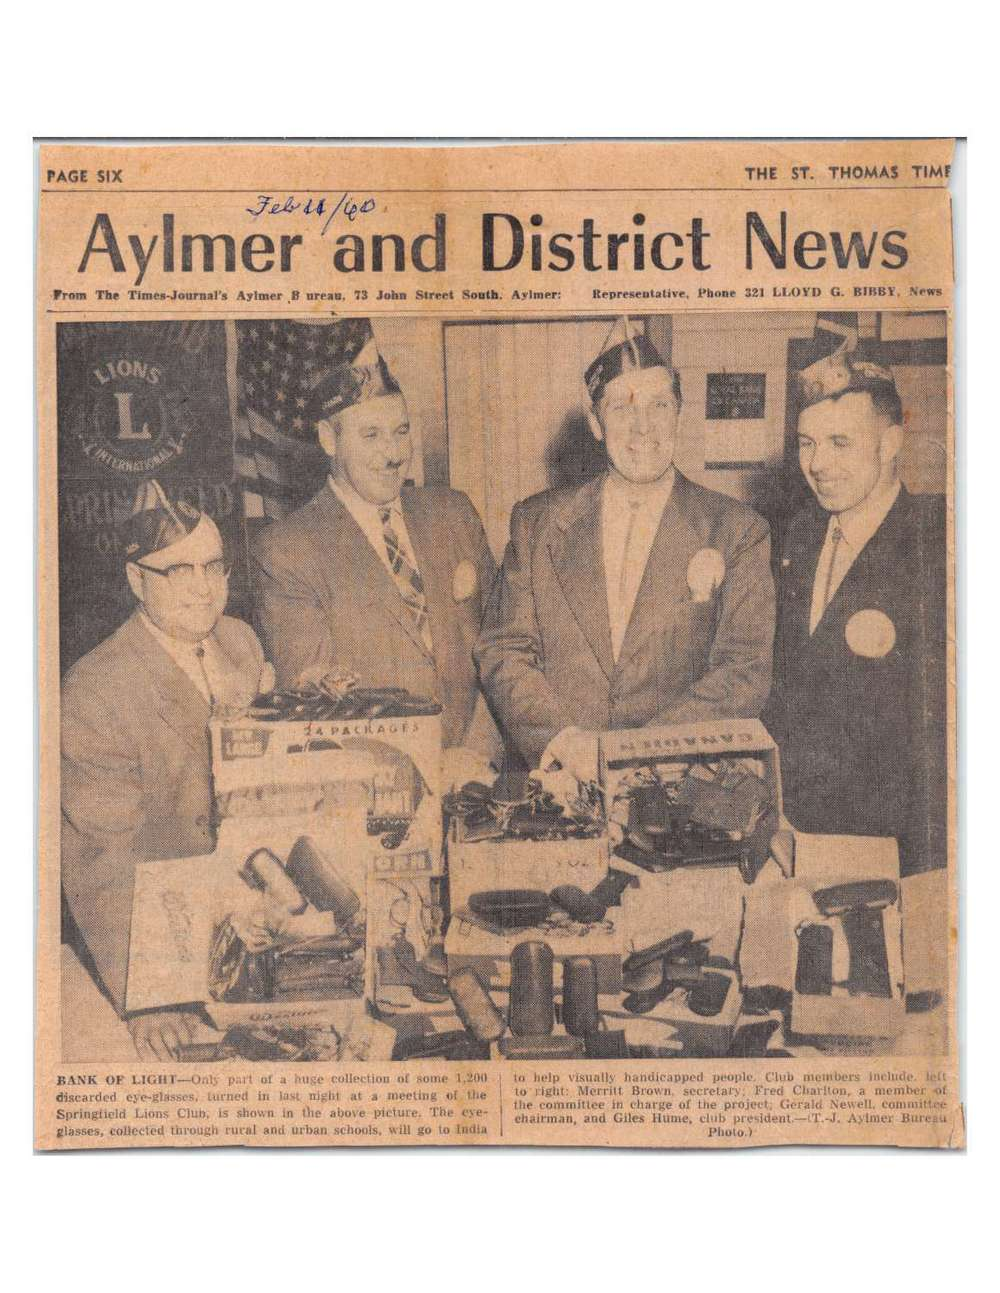 1960 - Lions Club Eyeglass collecting-1500.jpg